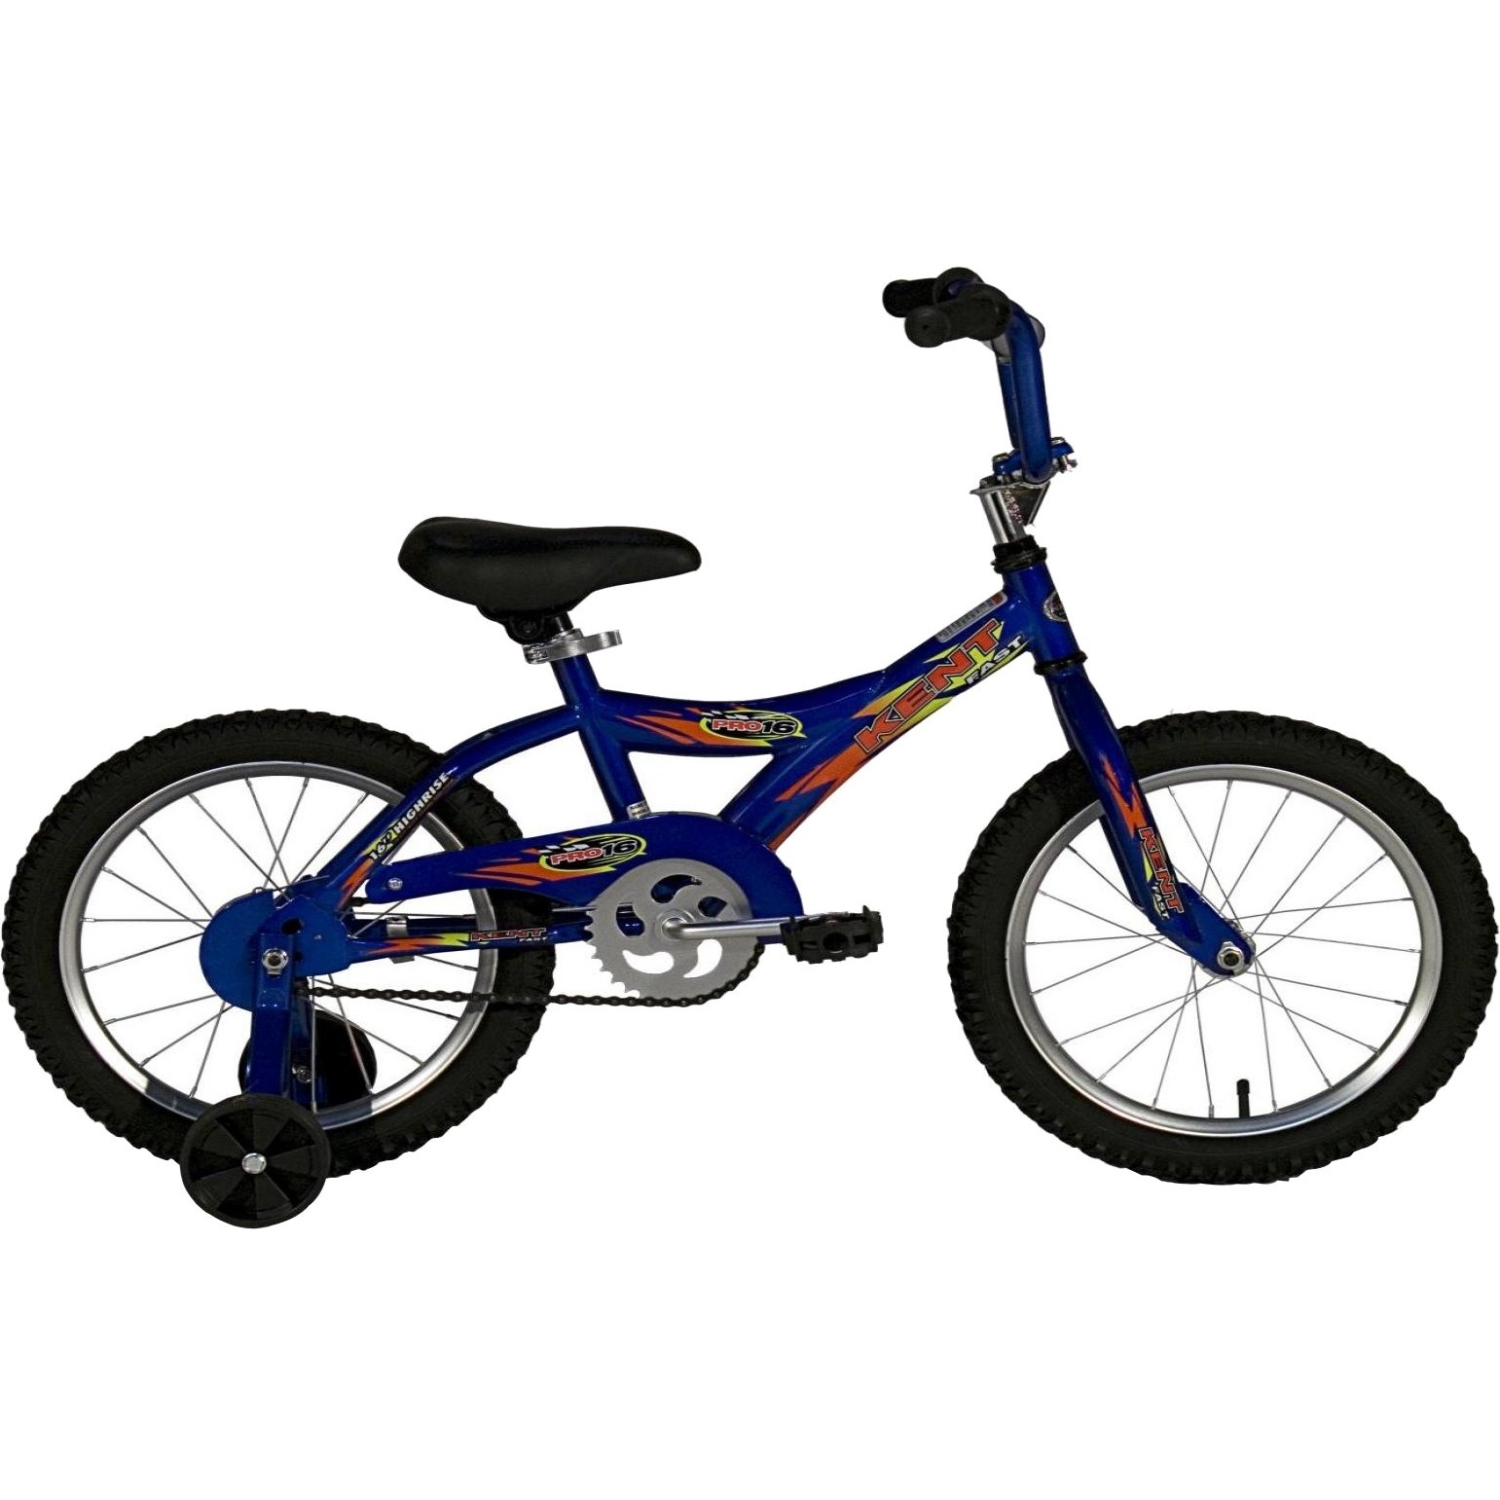 Kent Pro Kids Bicycle With Training Wheels, 16 in Front, 16 in Rear, Steel Frame by Kent International, Inc